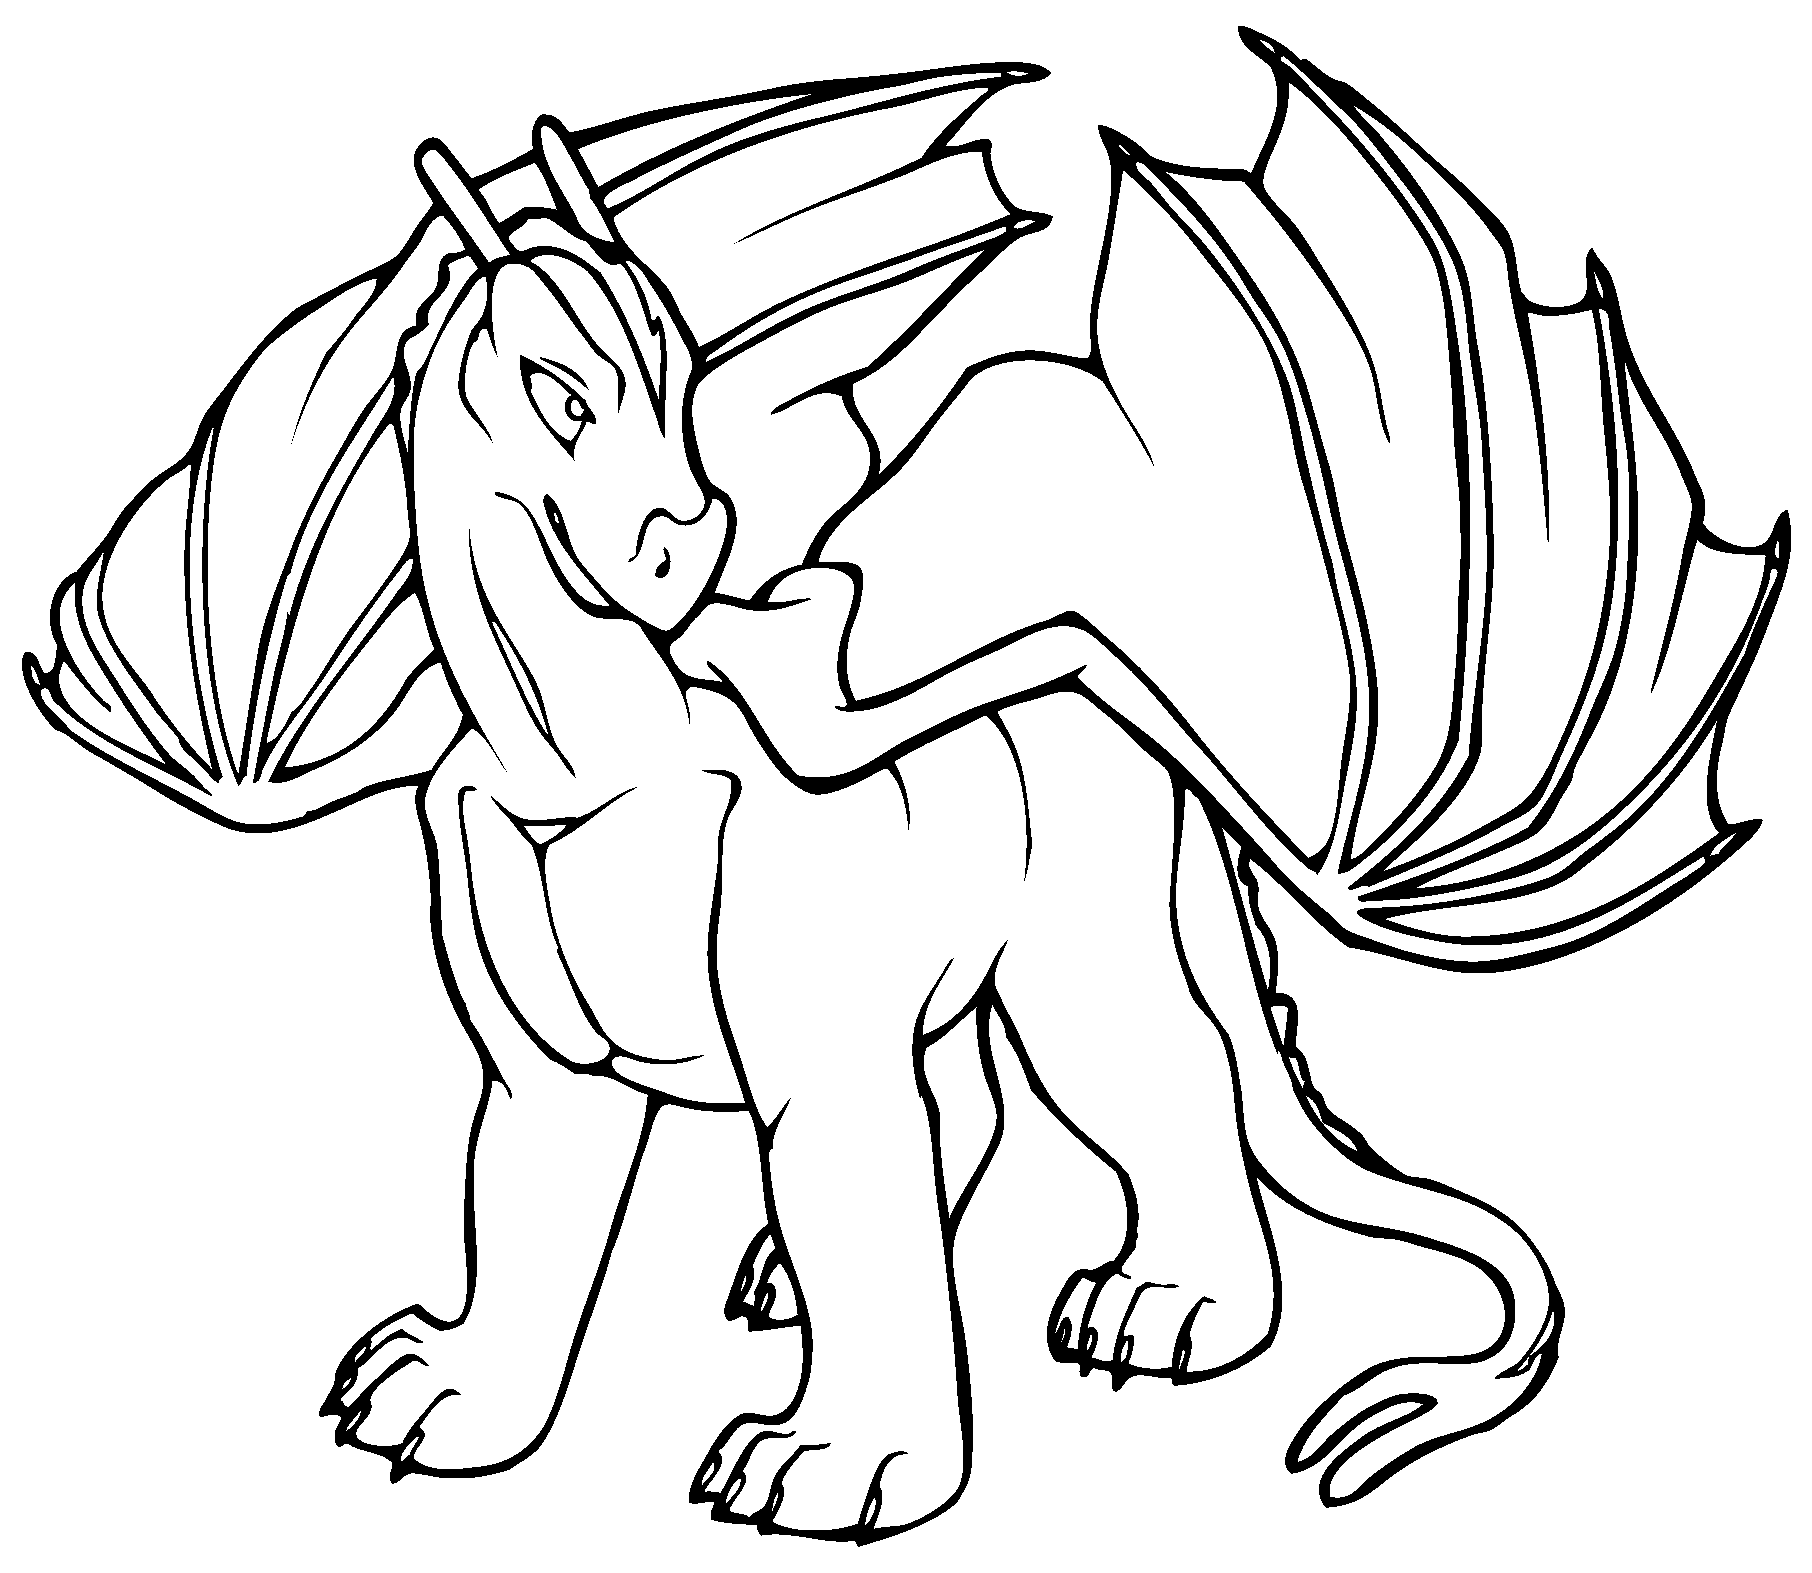 4 Images of Cartoon Dragon Coloring Pages Printable